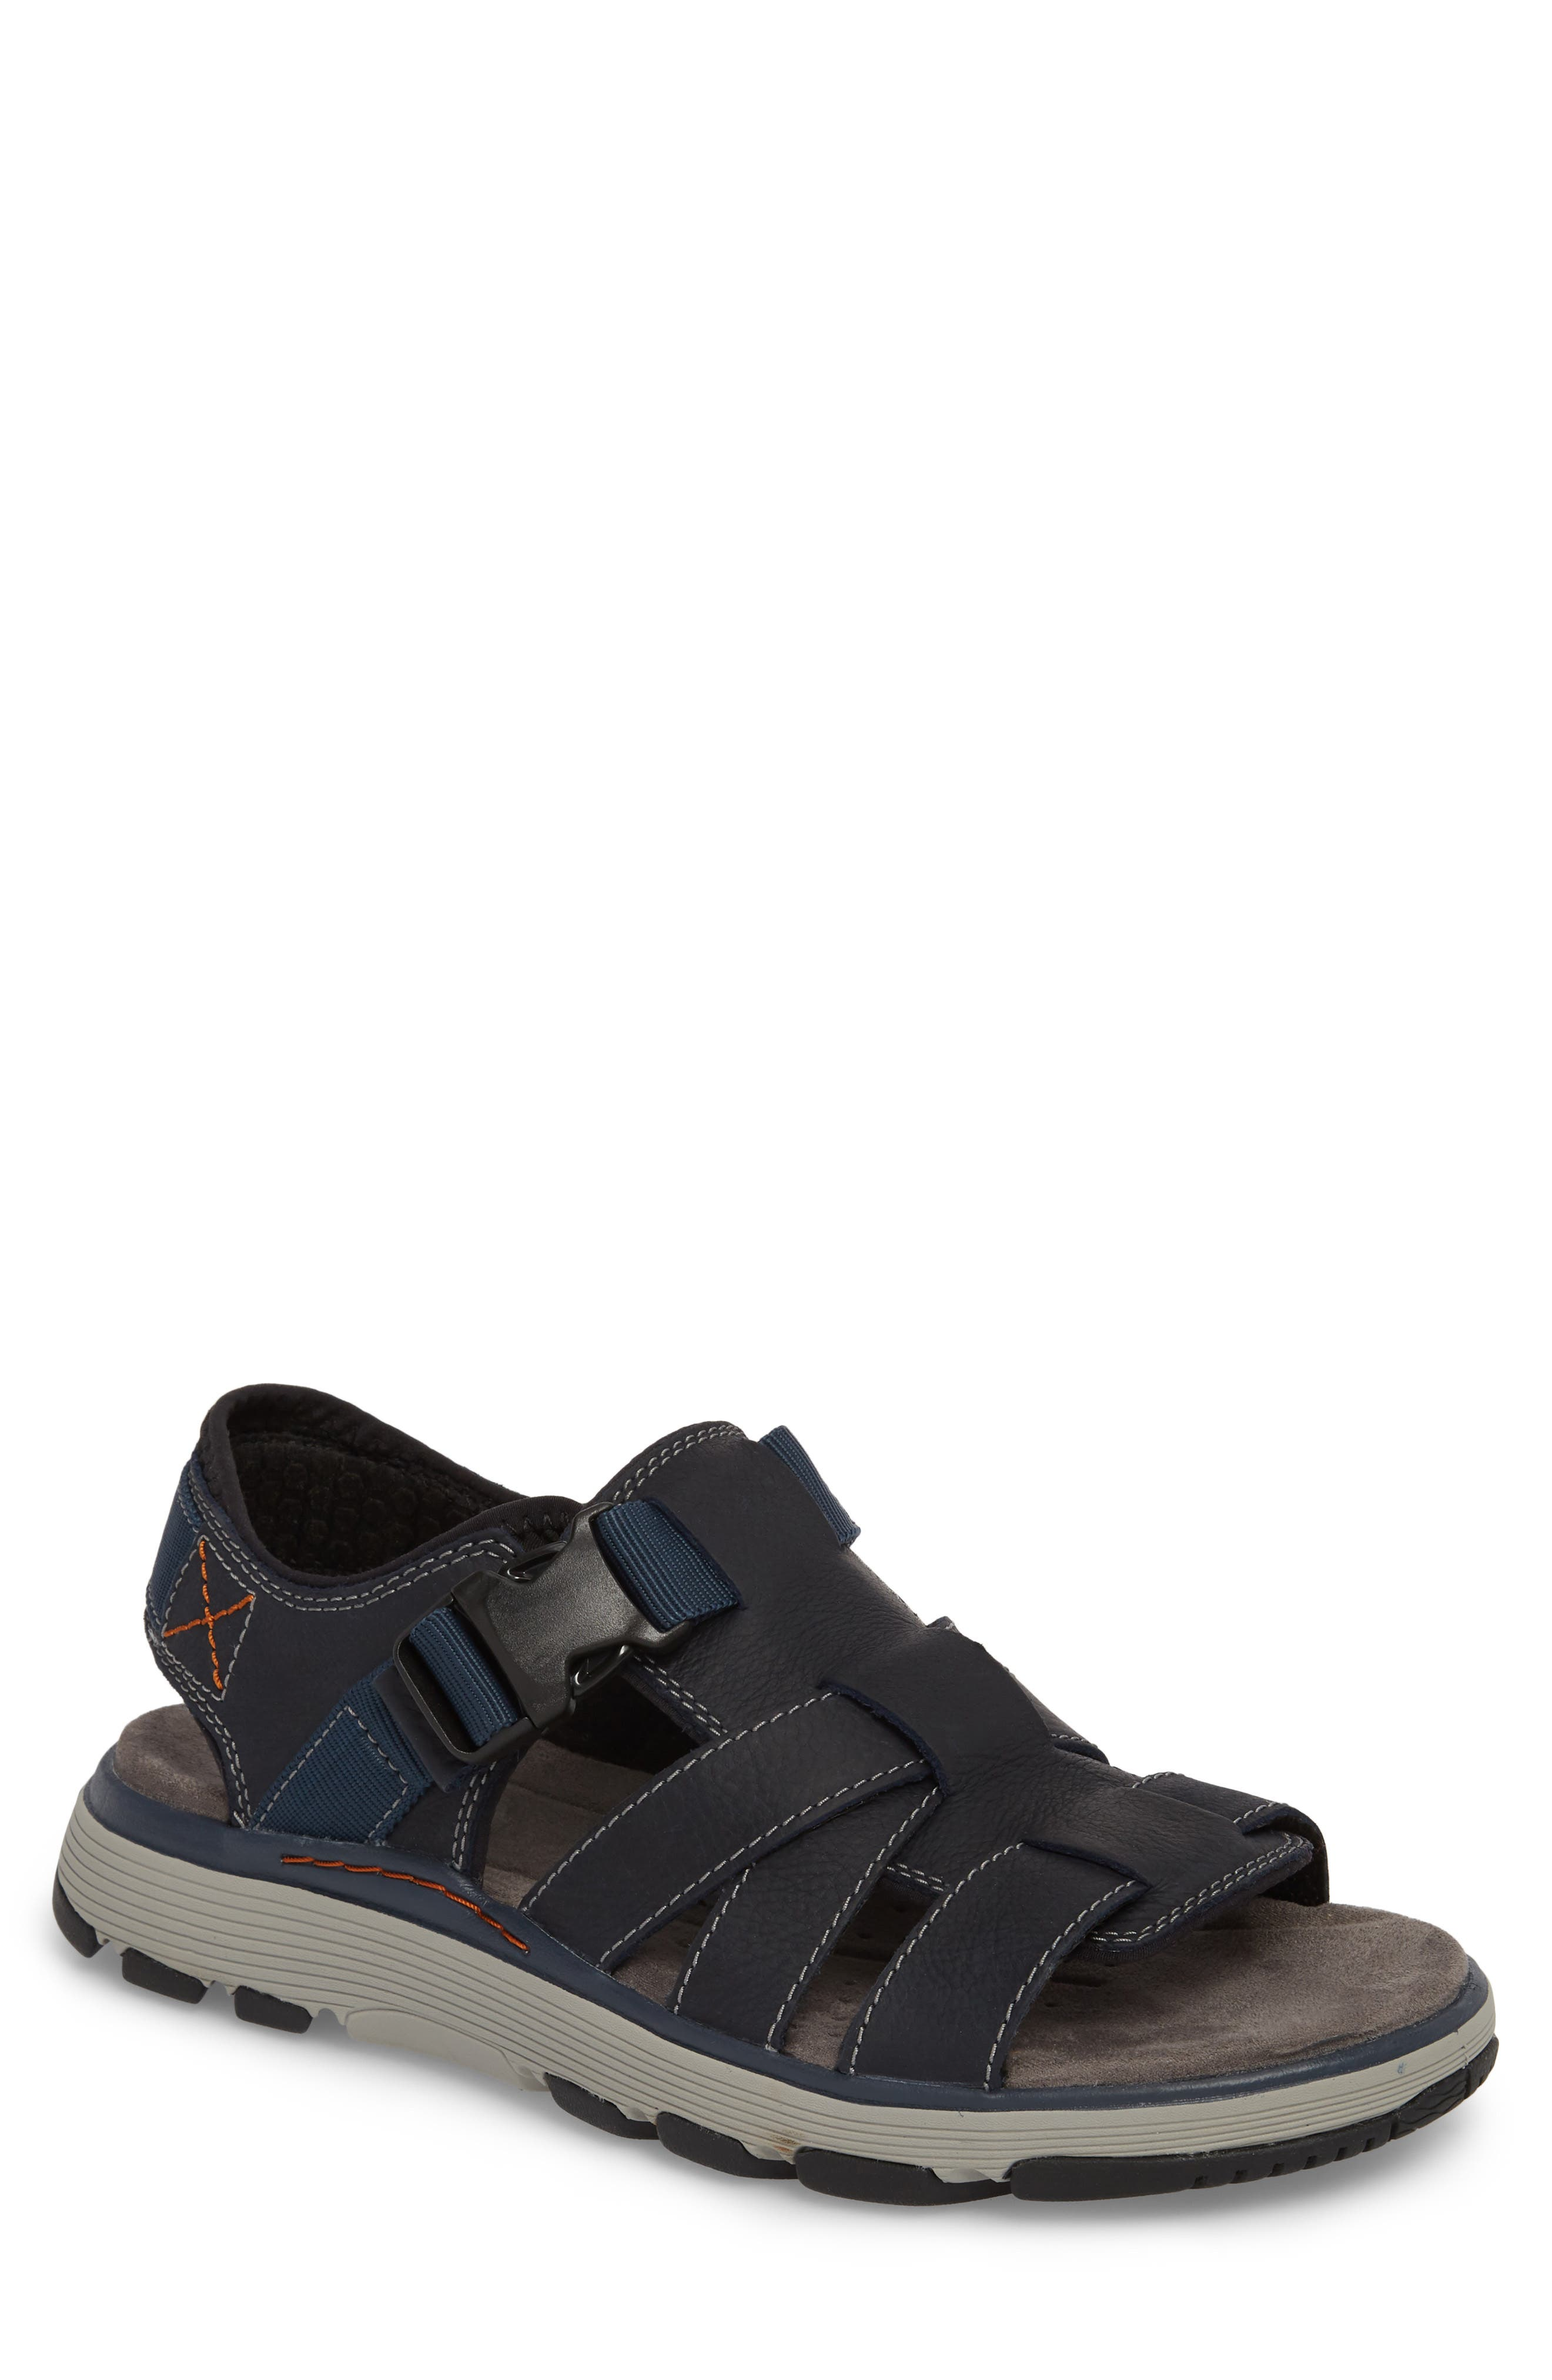 Clarks<sup>®</sup> Untrek Cove Fisherman Sandal,                             Main thumbnail 2, color,